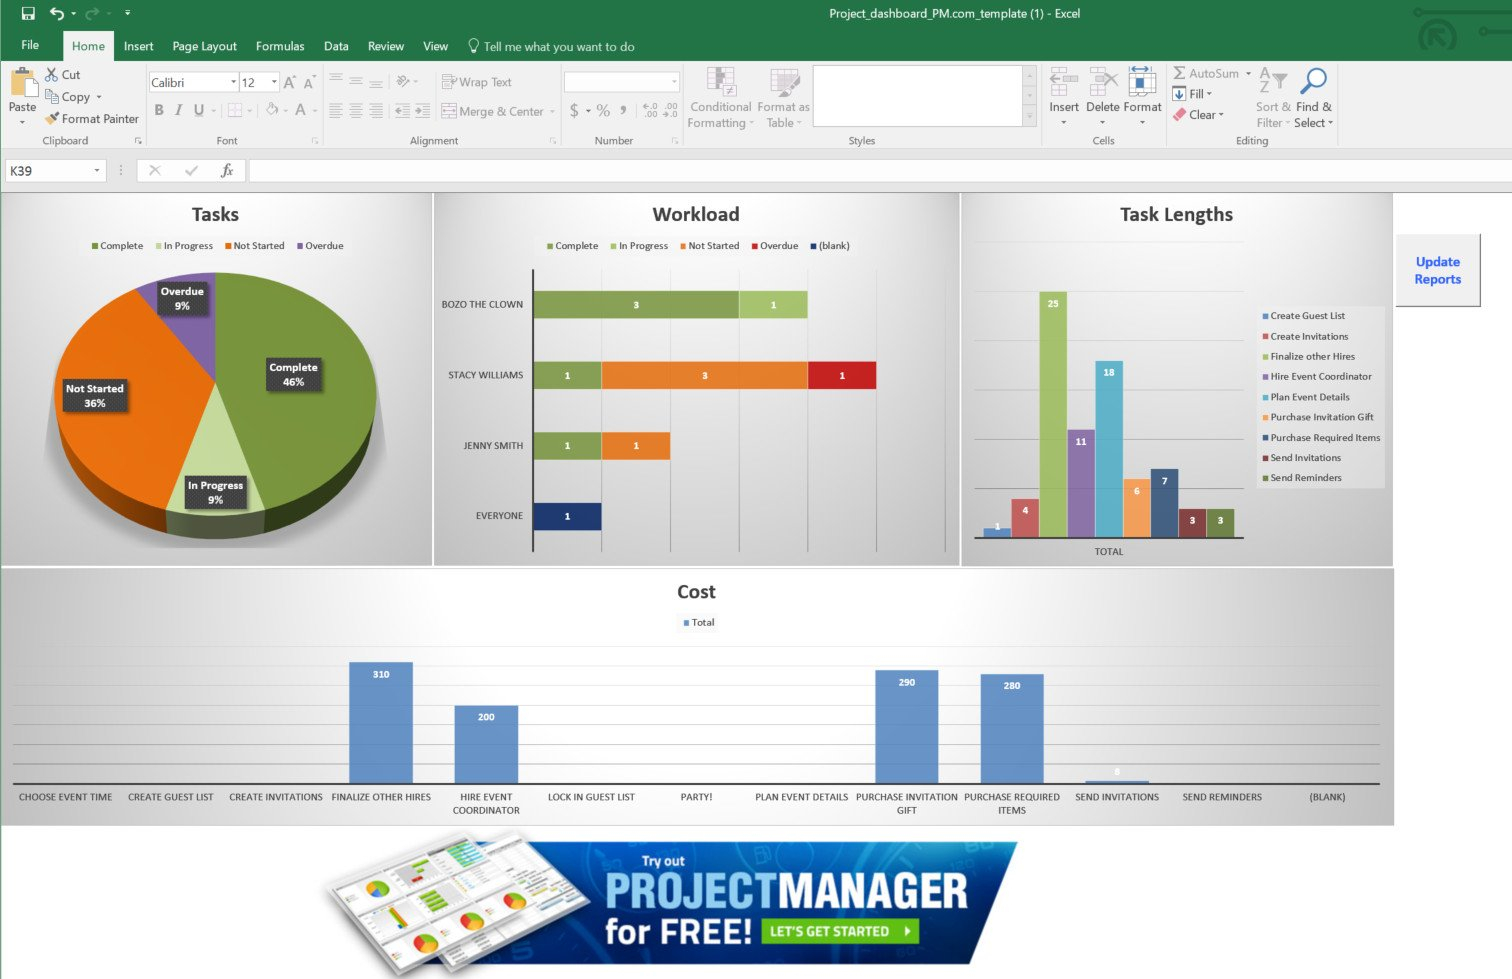 Guide To Excel Project Management   Projectmanager.com Together With Create Project Management Dashboard In Excel